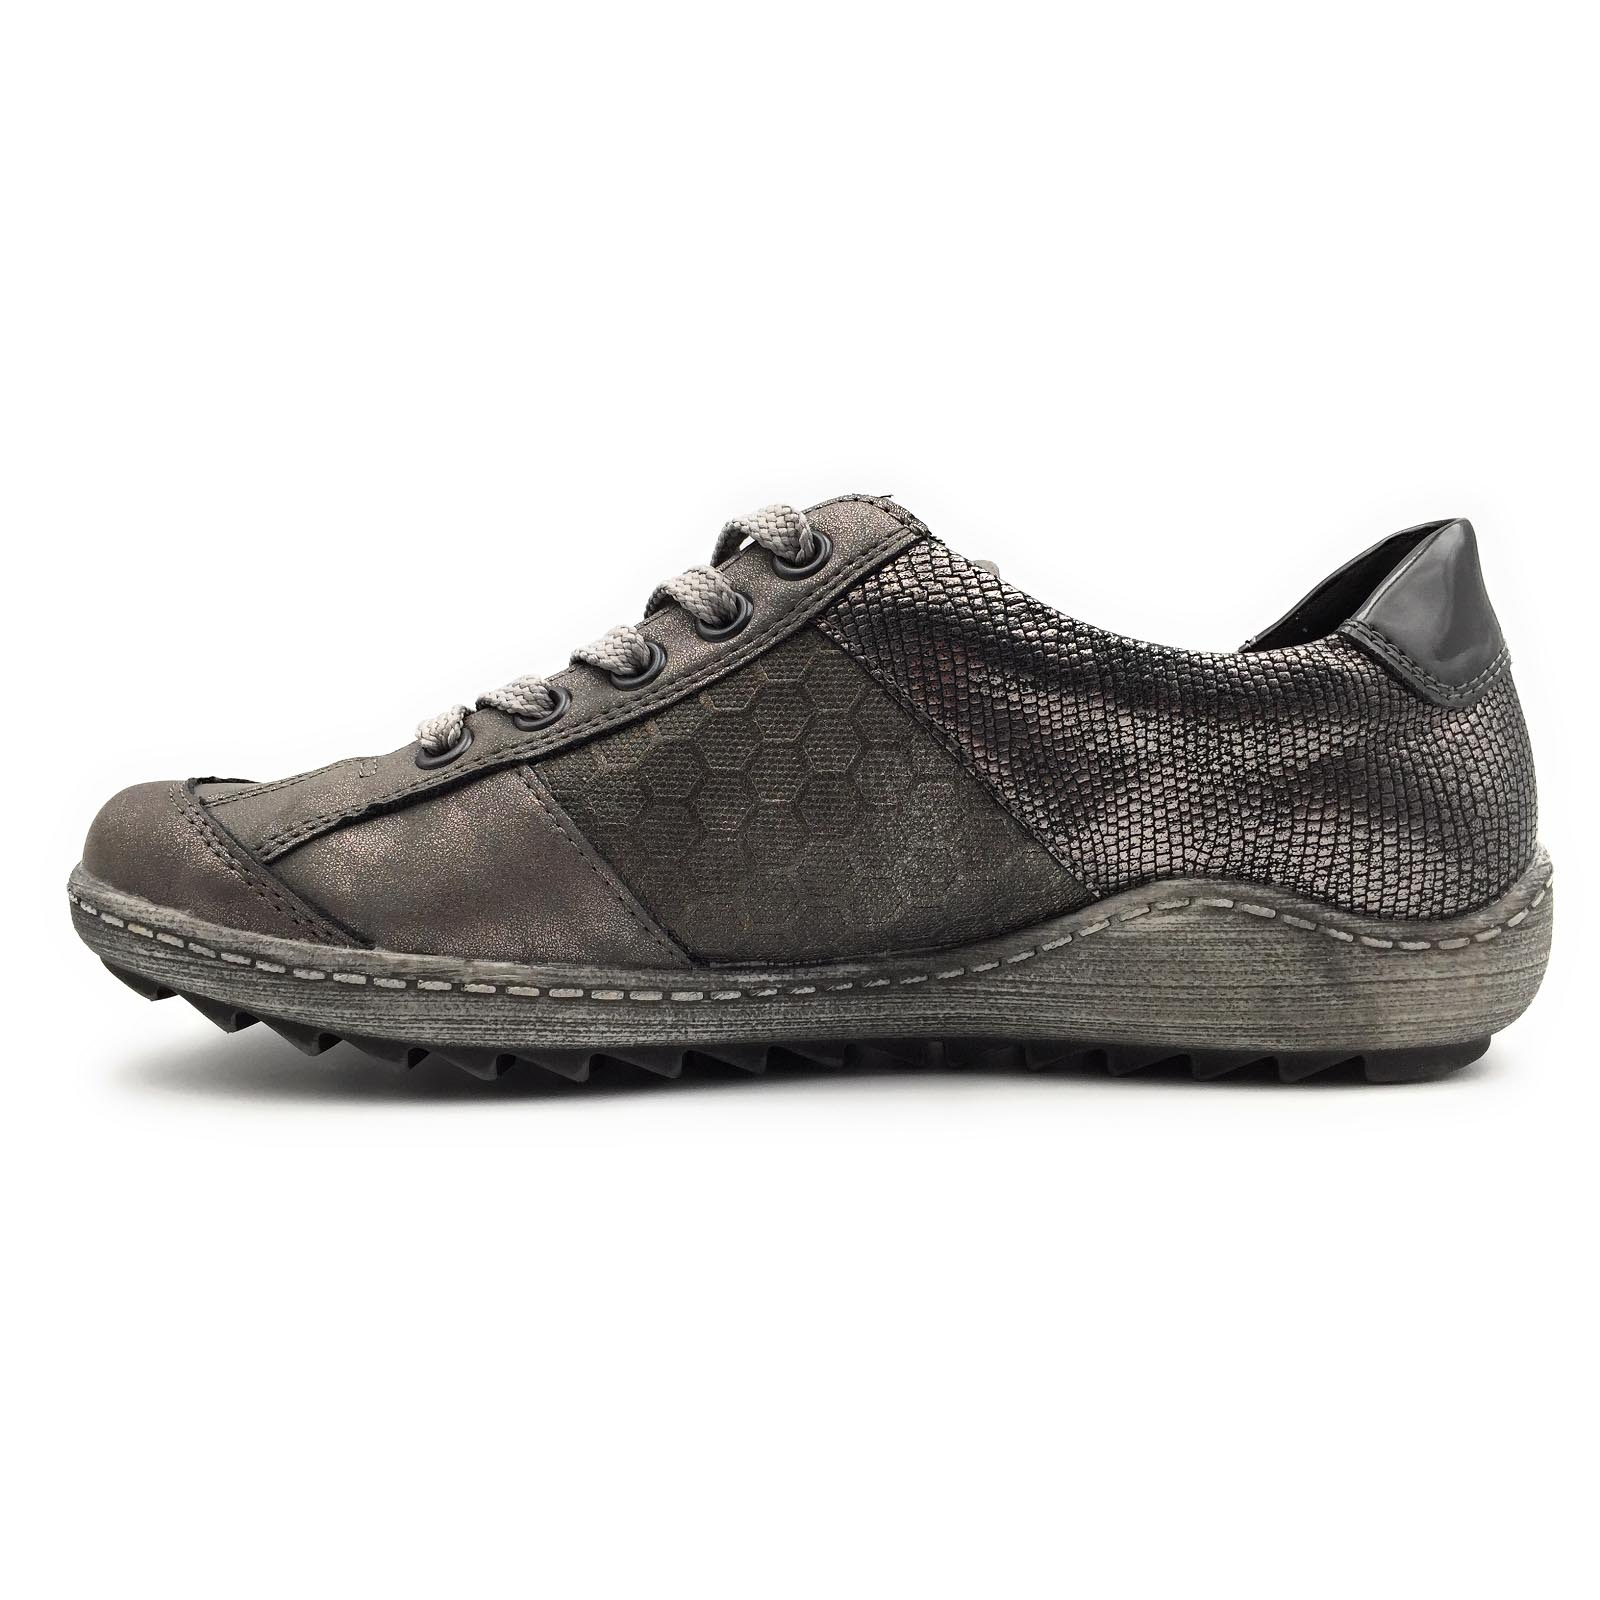 Remonte baskets mode r1414 gris8051803_6